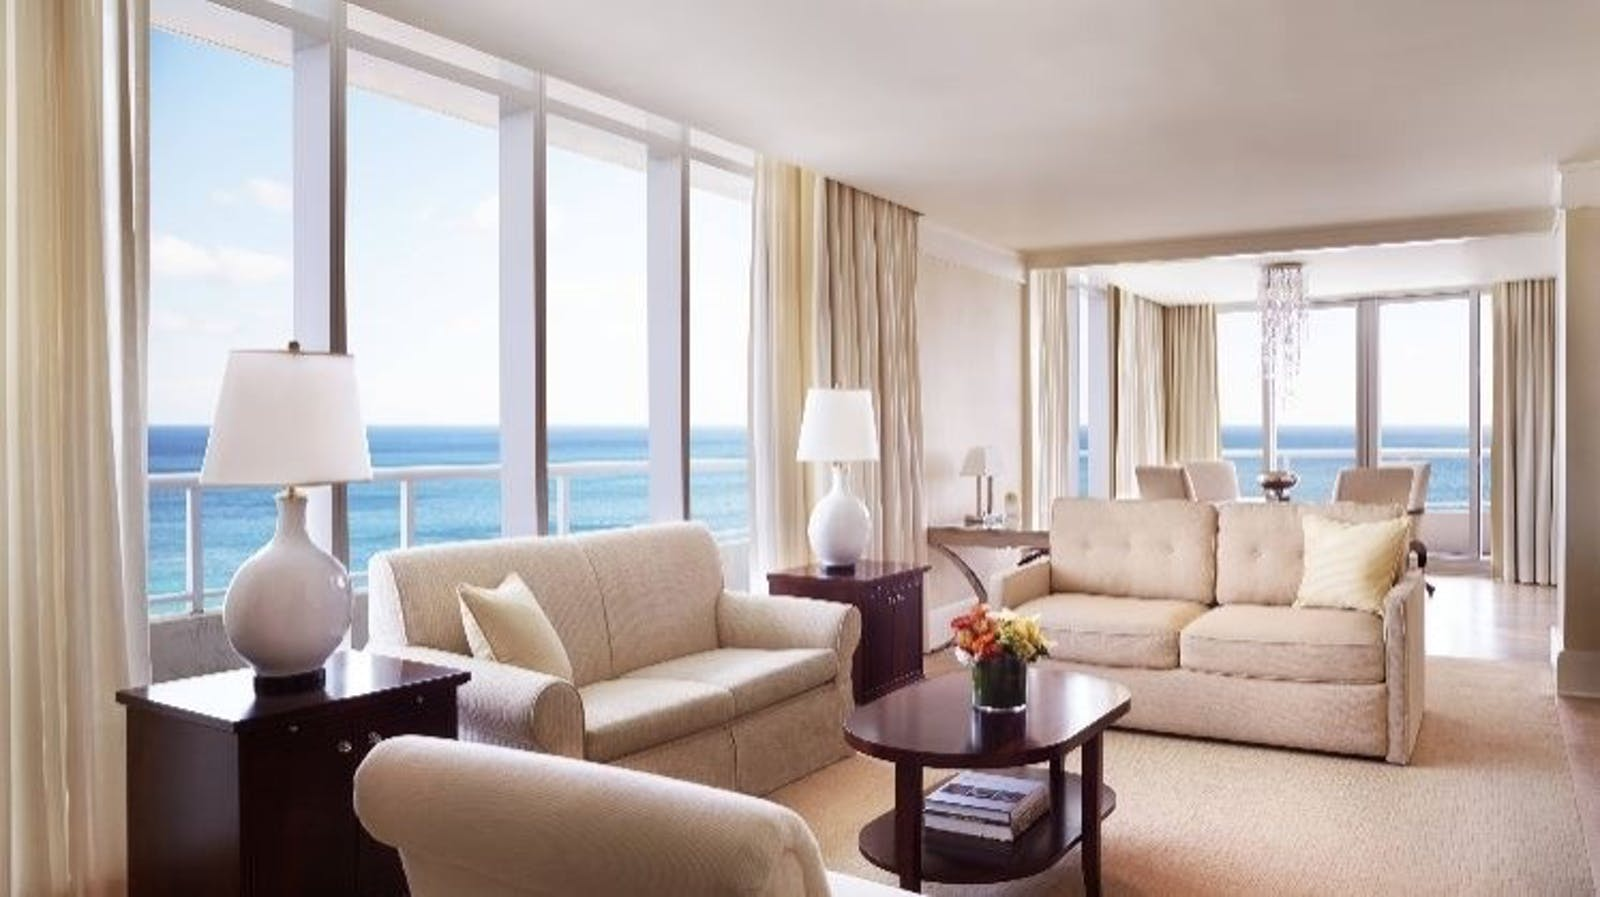 ritz carlton suite at the-ritz carlton fort lauderdale